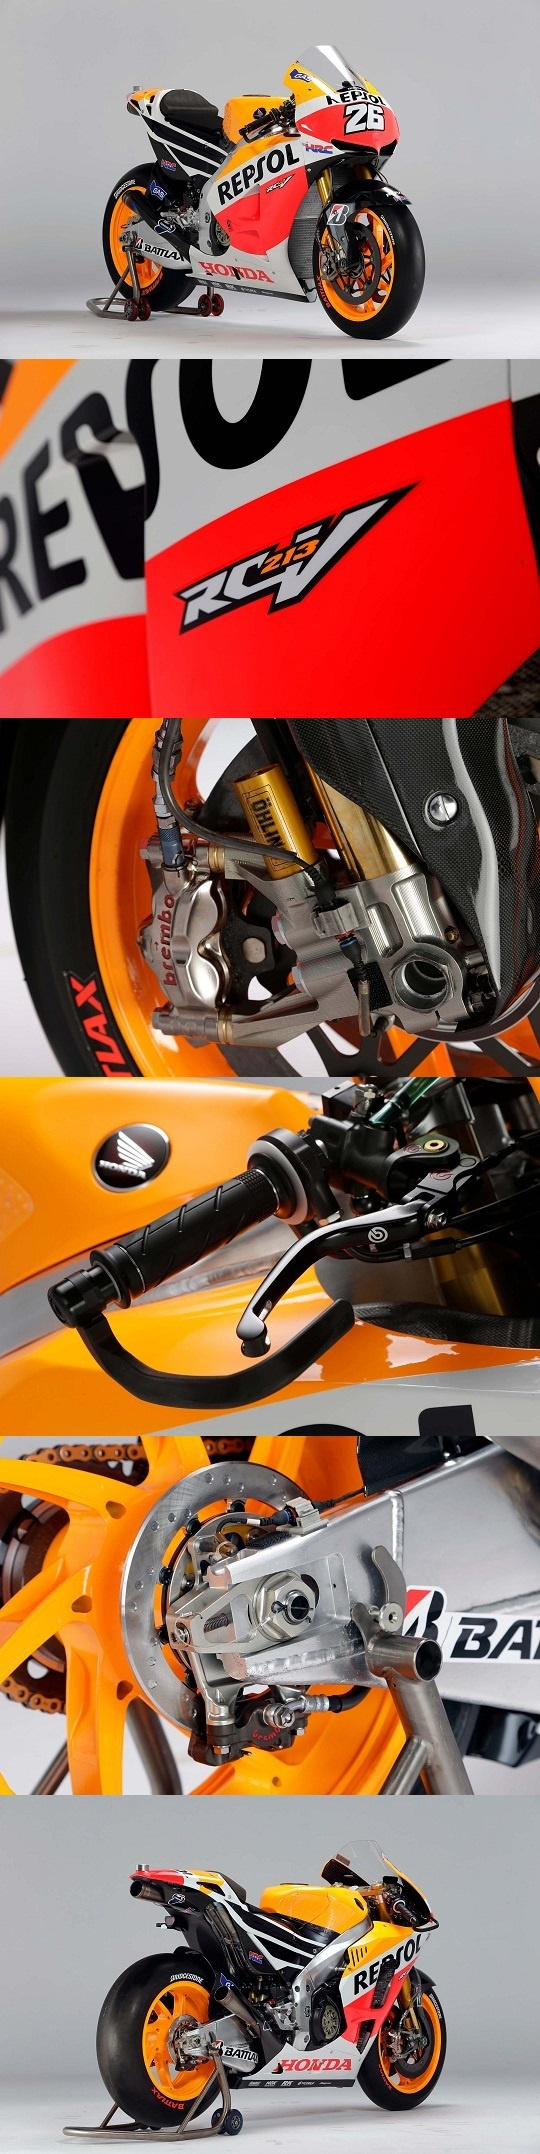 2013 Honda Repsol...Engineering at the highest level.